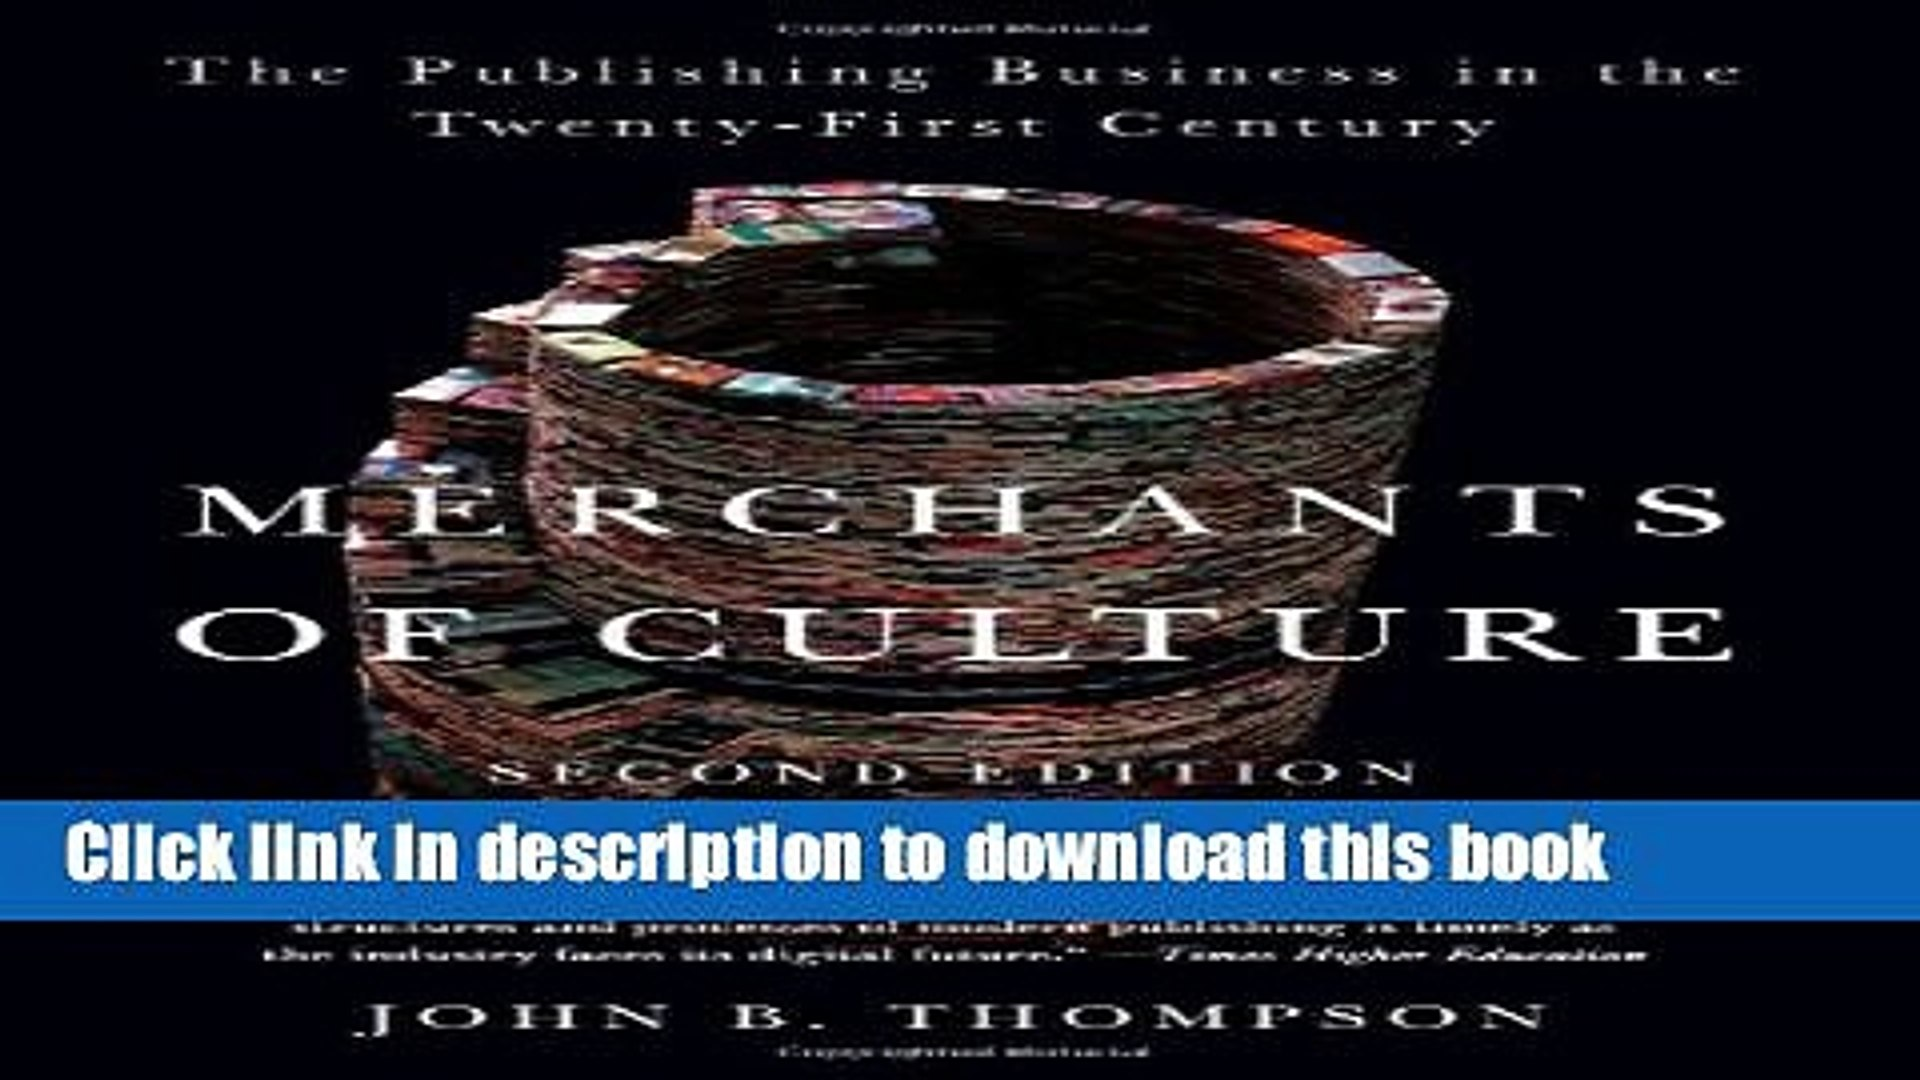 [Popular] Merchants of Culture: The Publishing Business in the Twenty-First Century Paperback Online